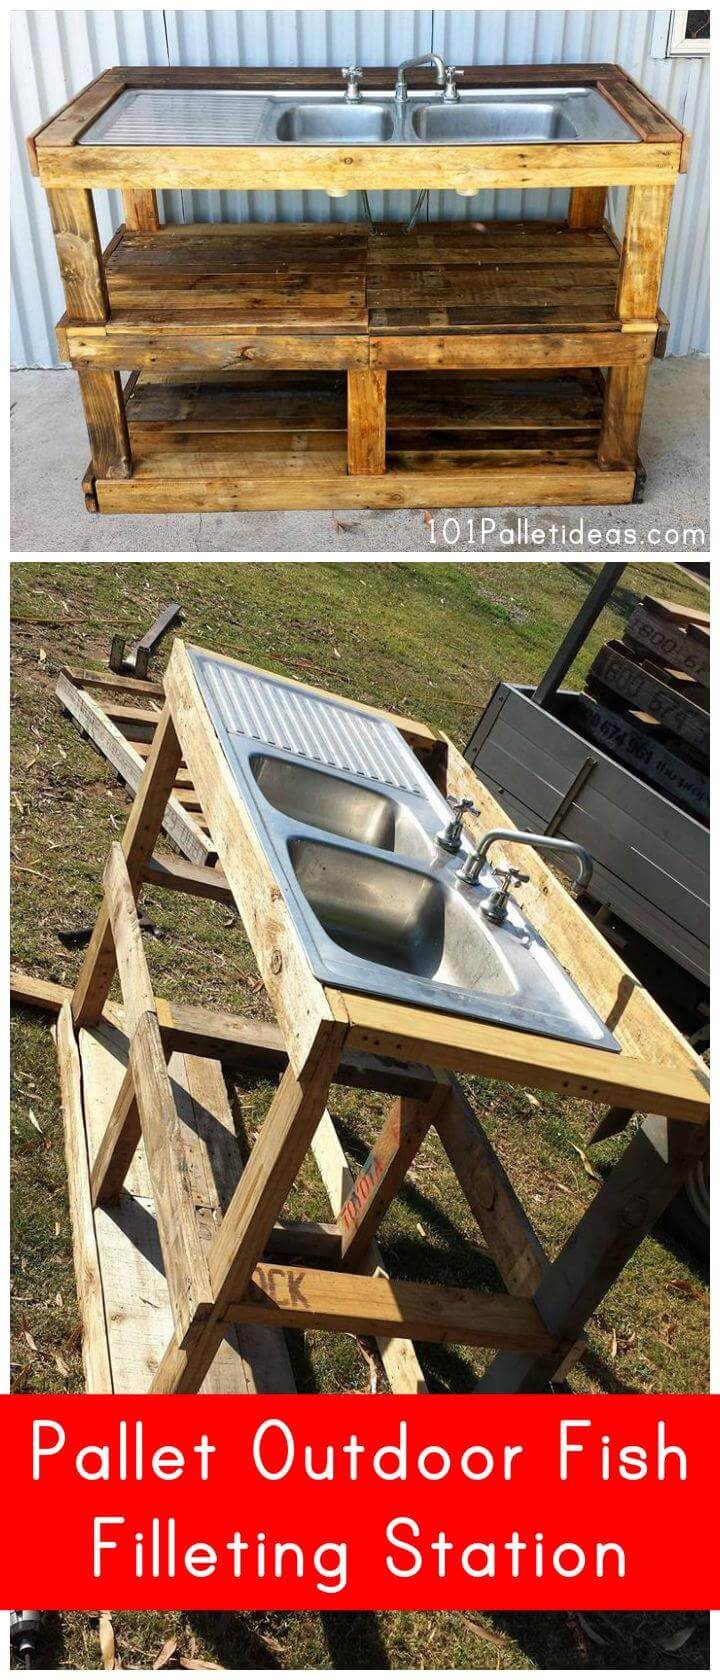 pallet outdoor fish filleting station   101 pallet ideas